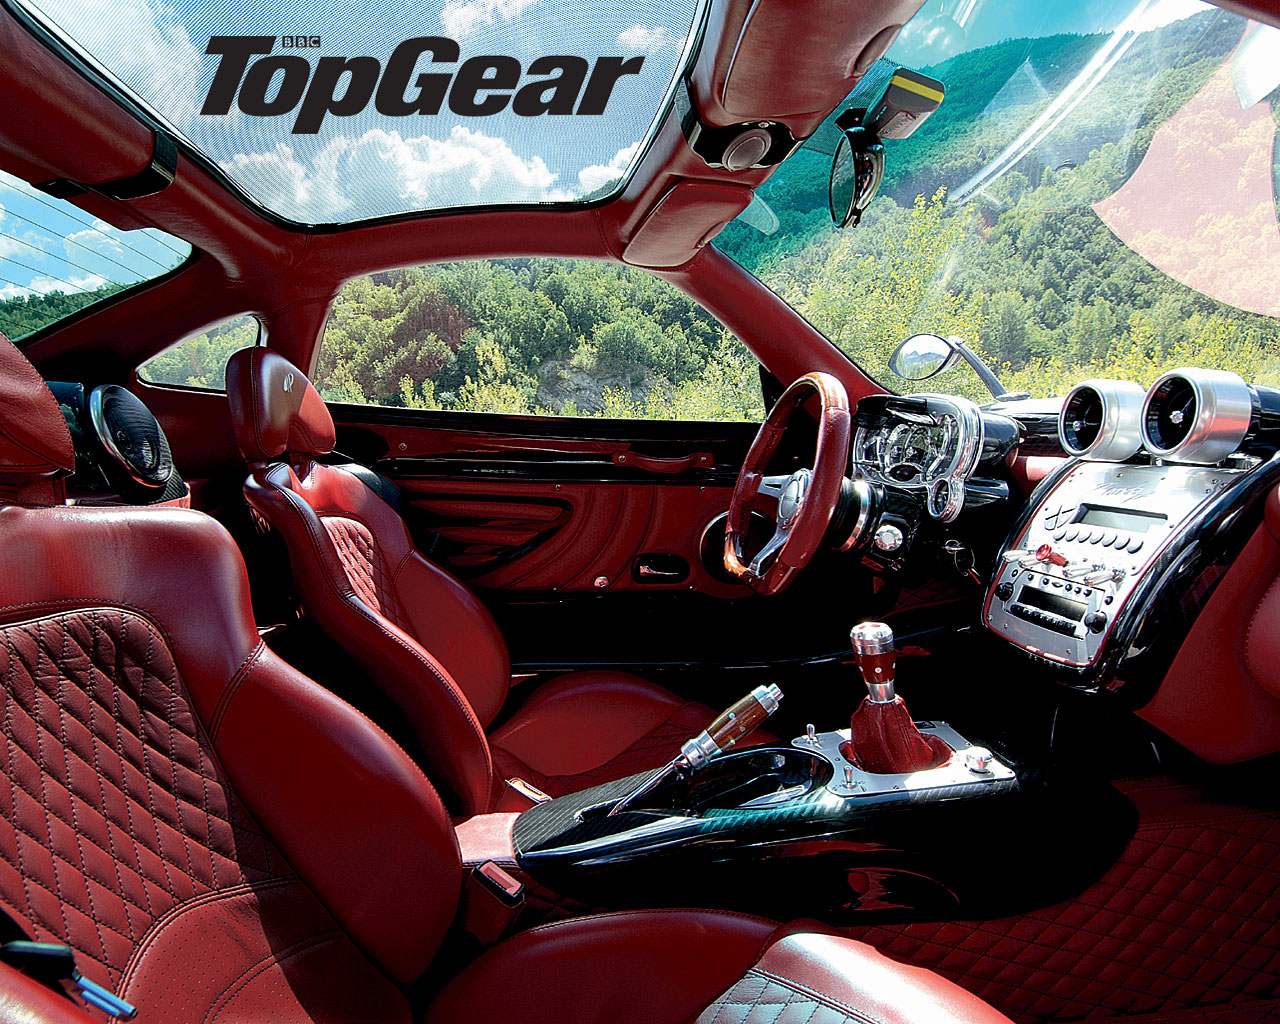 Gif wallpaper car amazing animated luxury car gifs at best animationson this page you will find fast luxury car gif animations. Top Gear Zonda S Windows 7 Car Wallpapers Pagani Zonda F Interior 1280x1024 Wallpaper Teahub Io